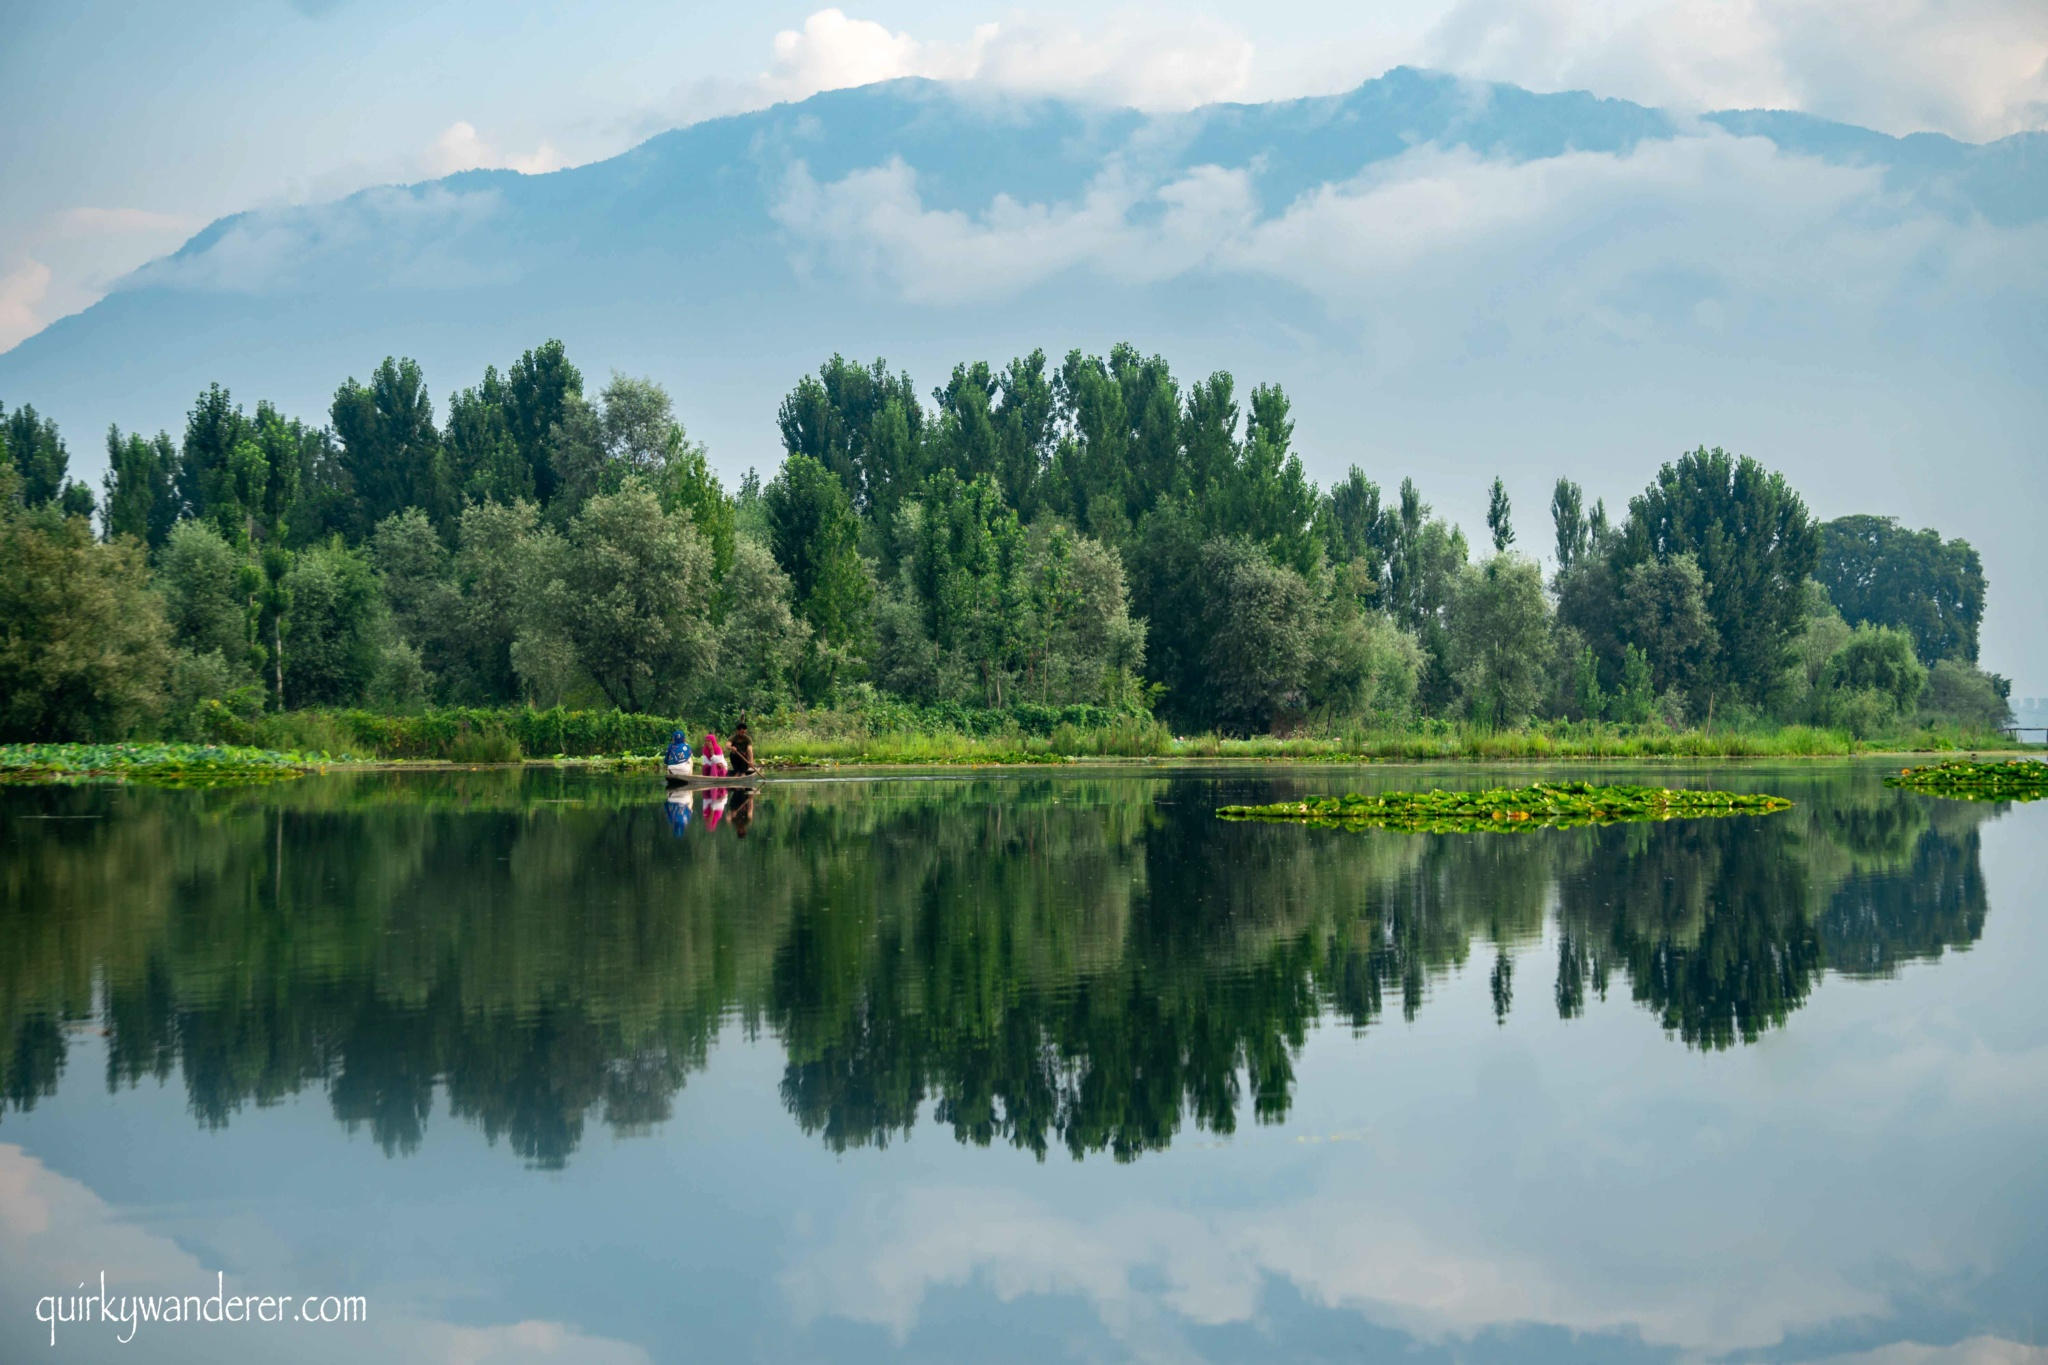 Offbeat lakes in Kashmir